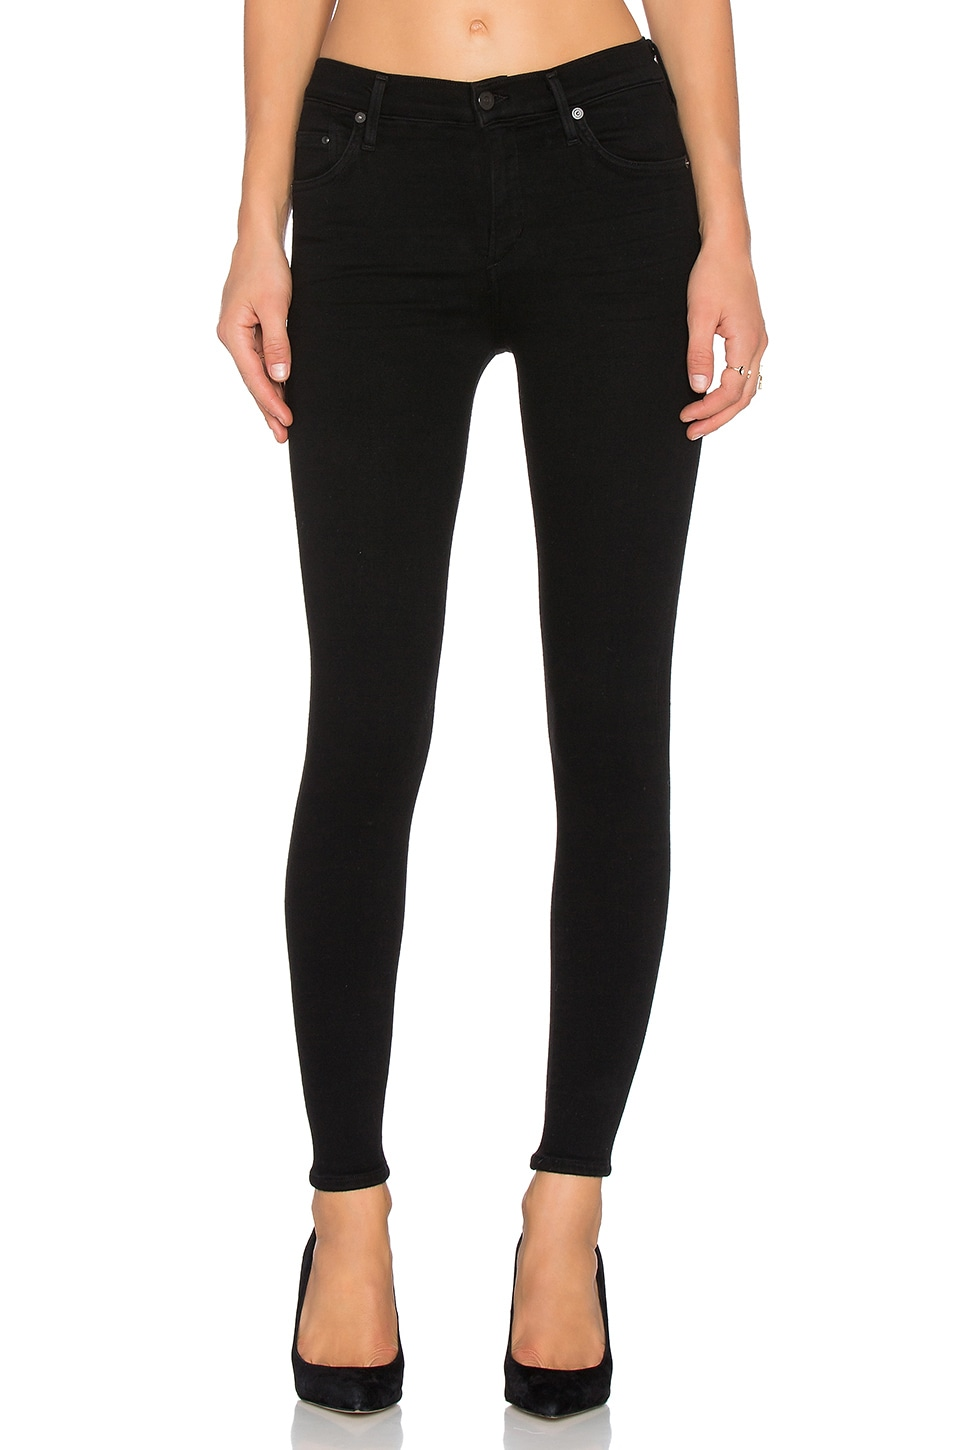 Citizens of Humanity SCULPT Rocket Petite in All Black